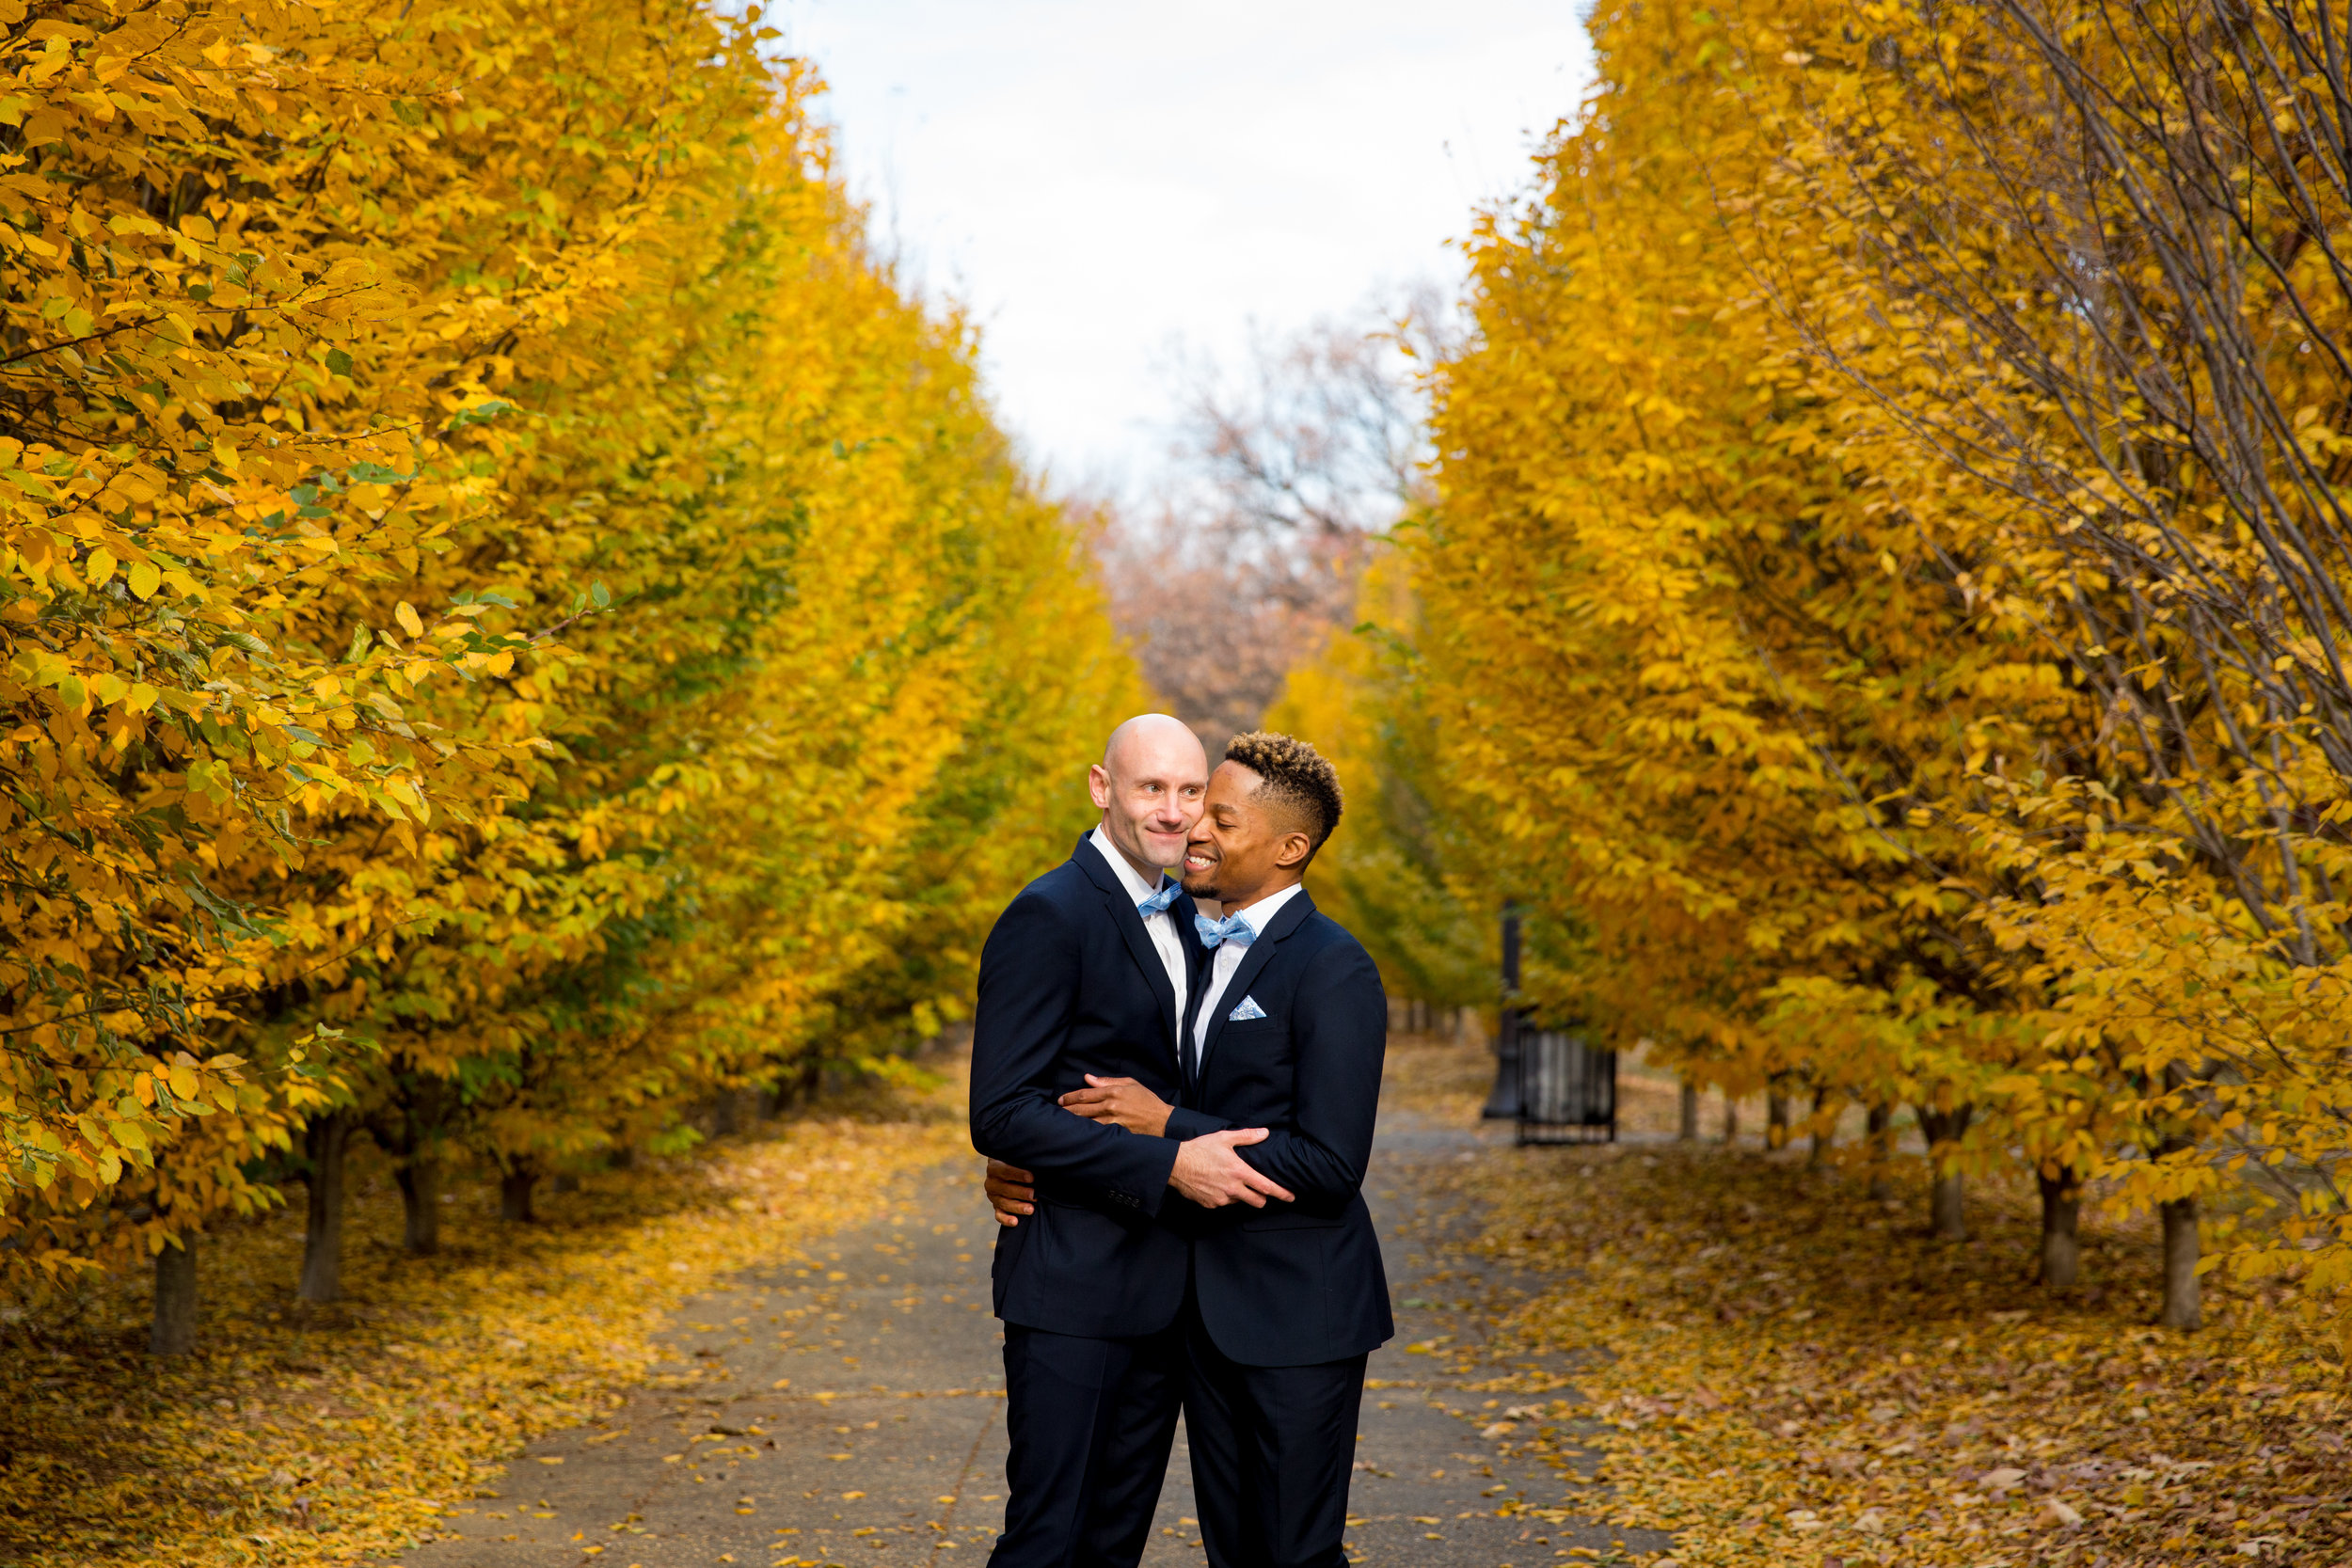 Adam+Ryan Sweetheart Session-130.jpg